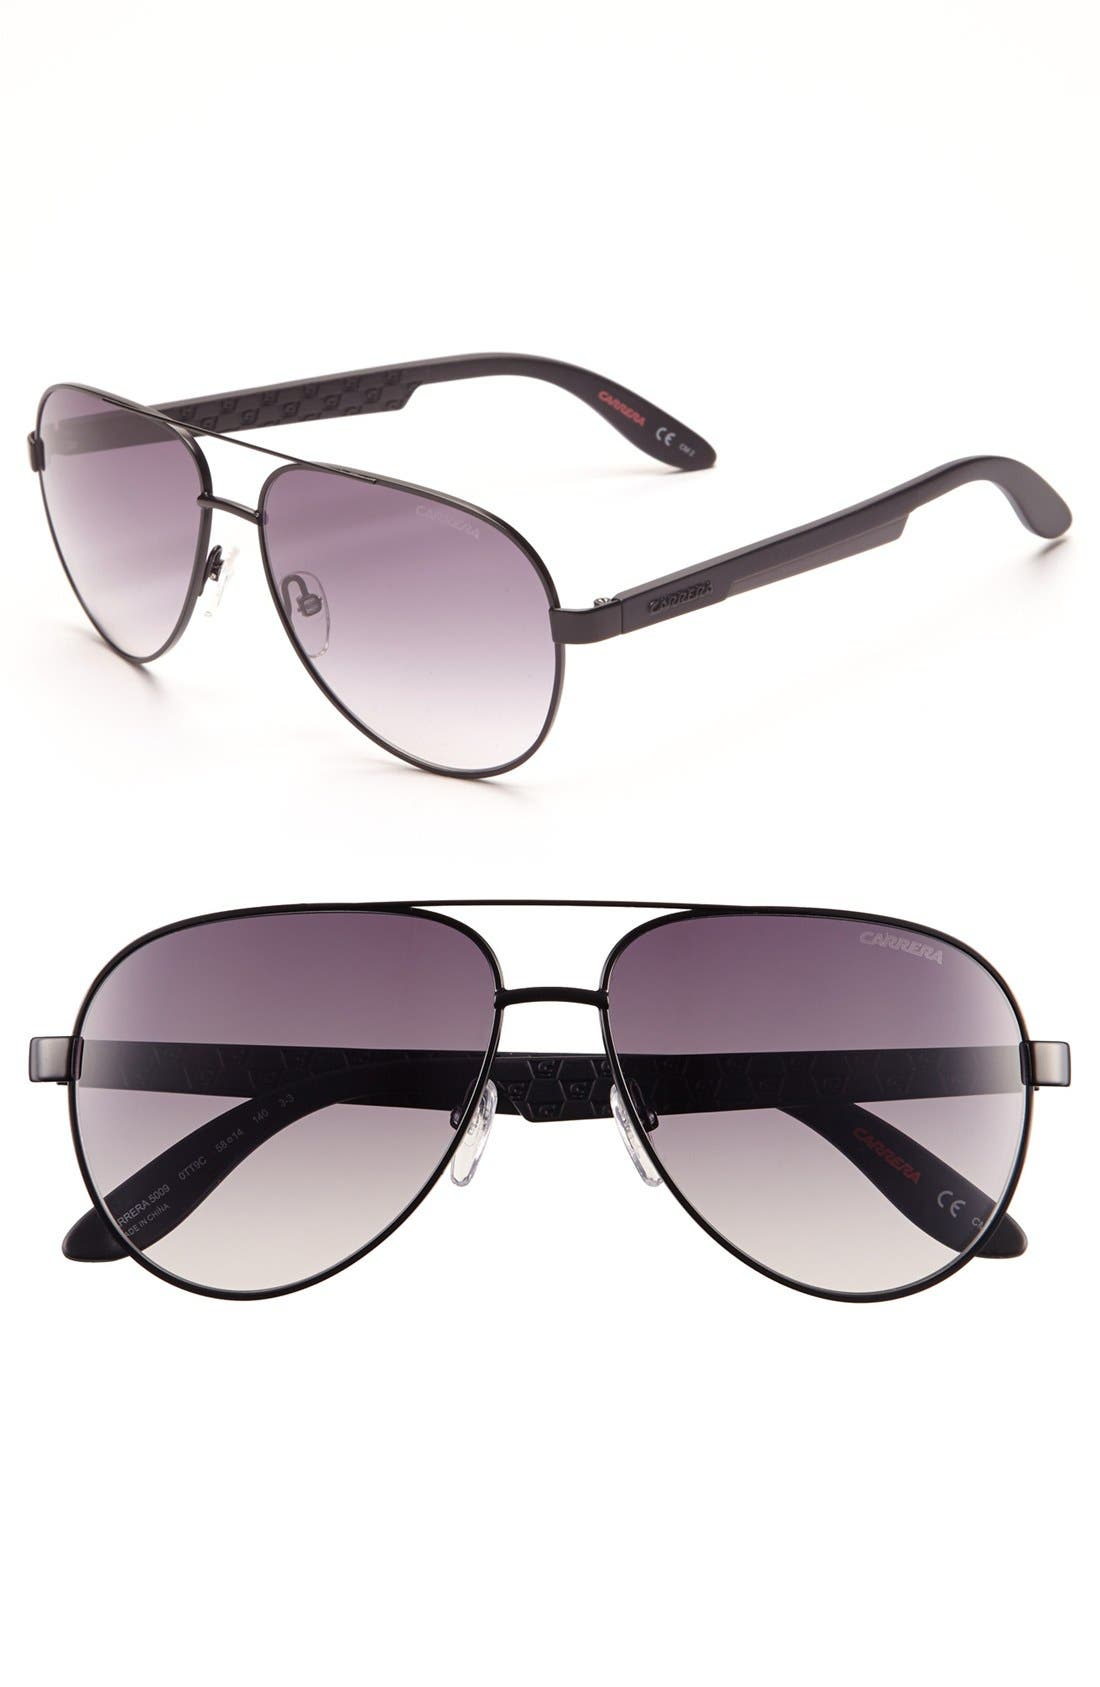 Main Image - Carrera Eyewear 58mm Aviator Sunglasses